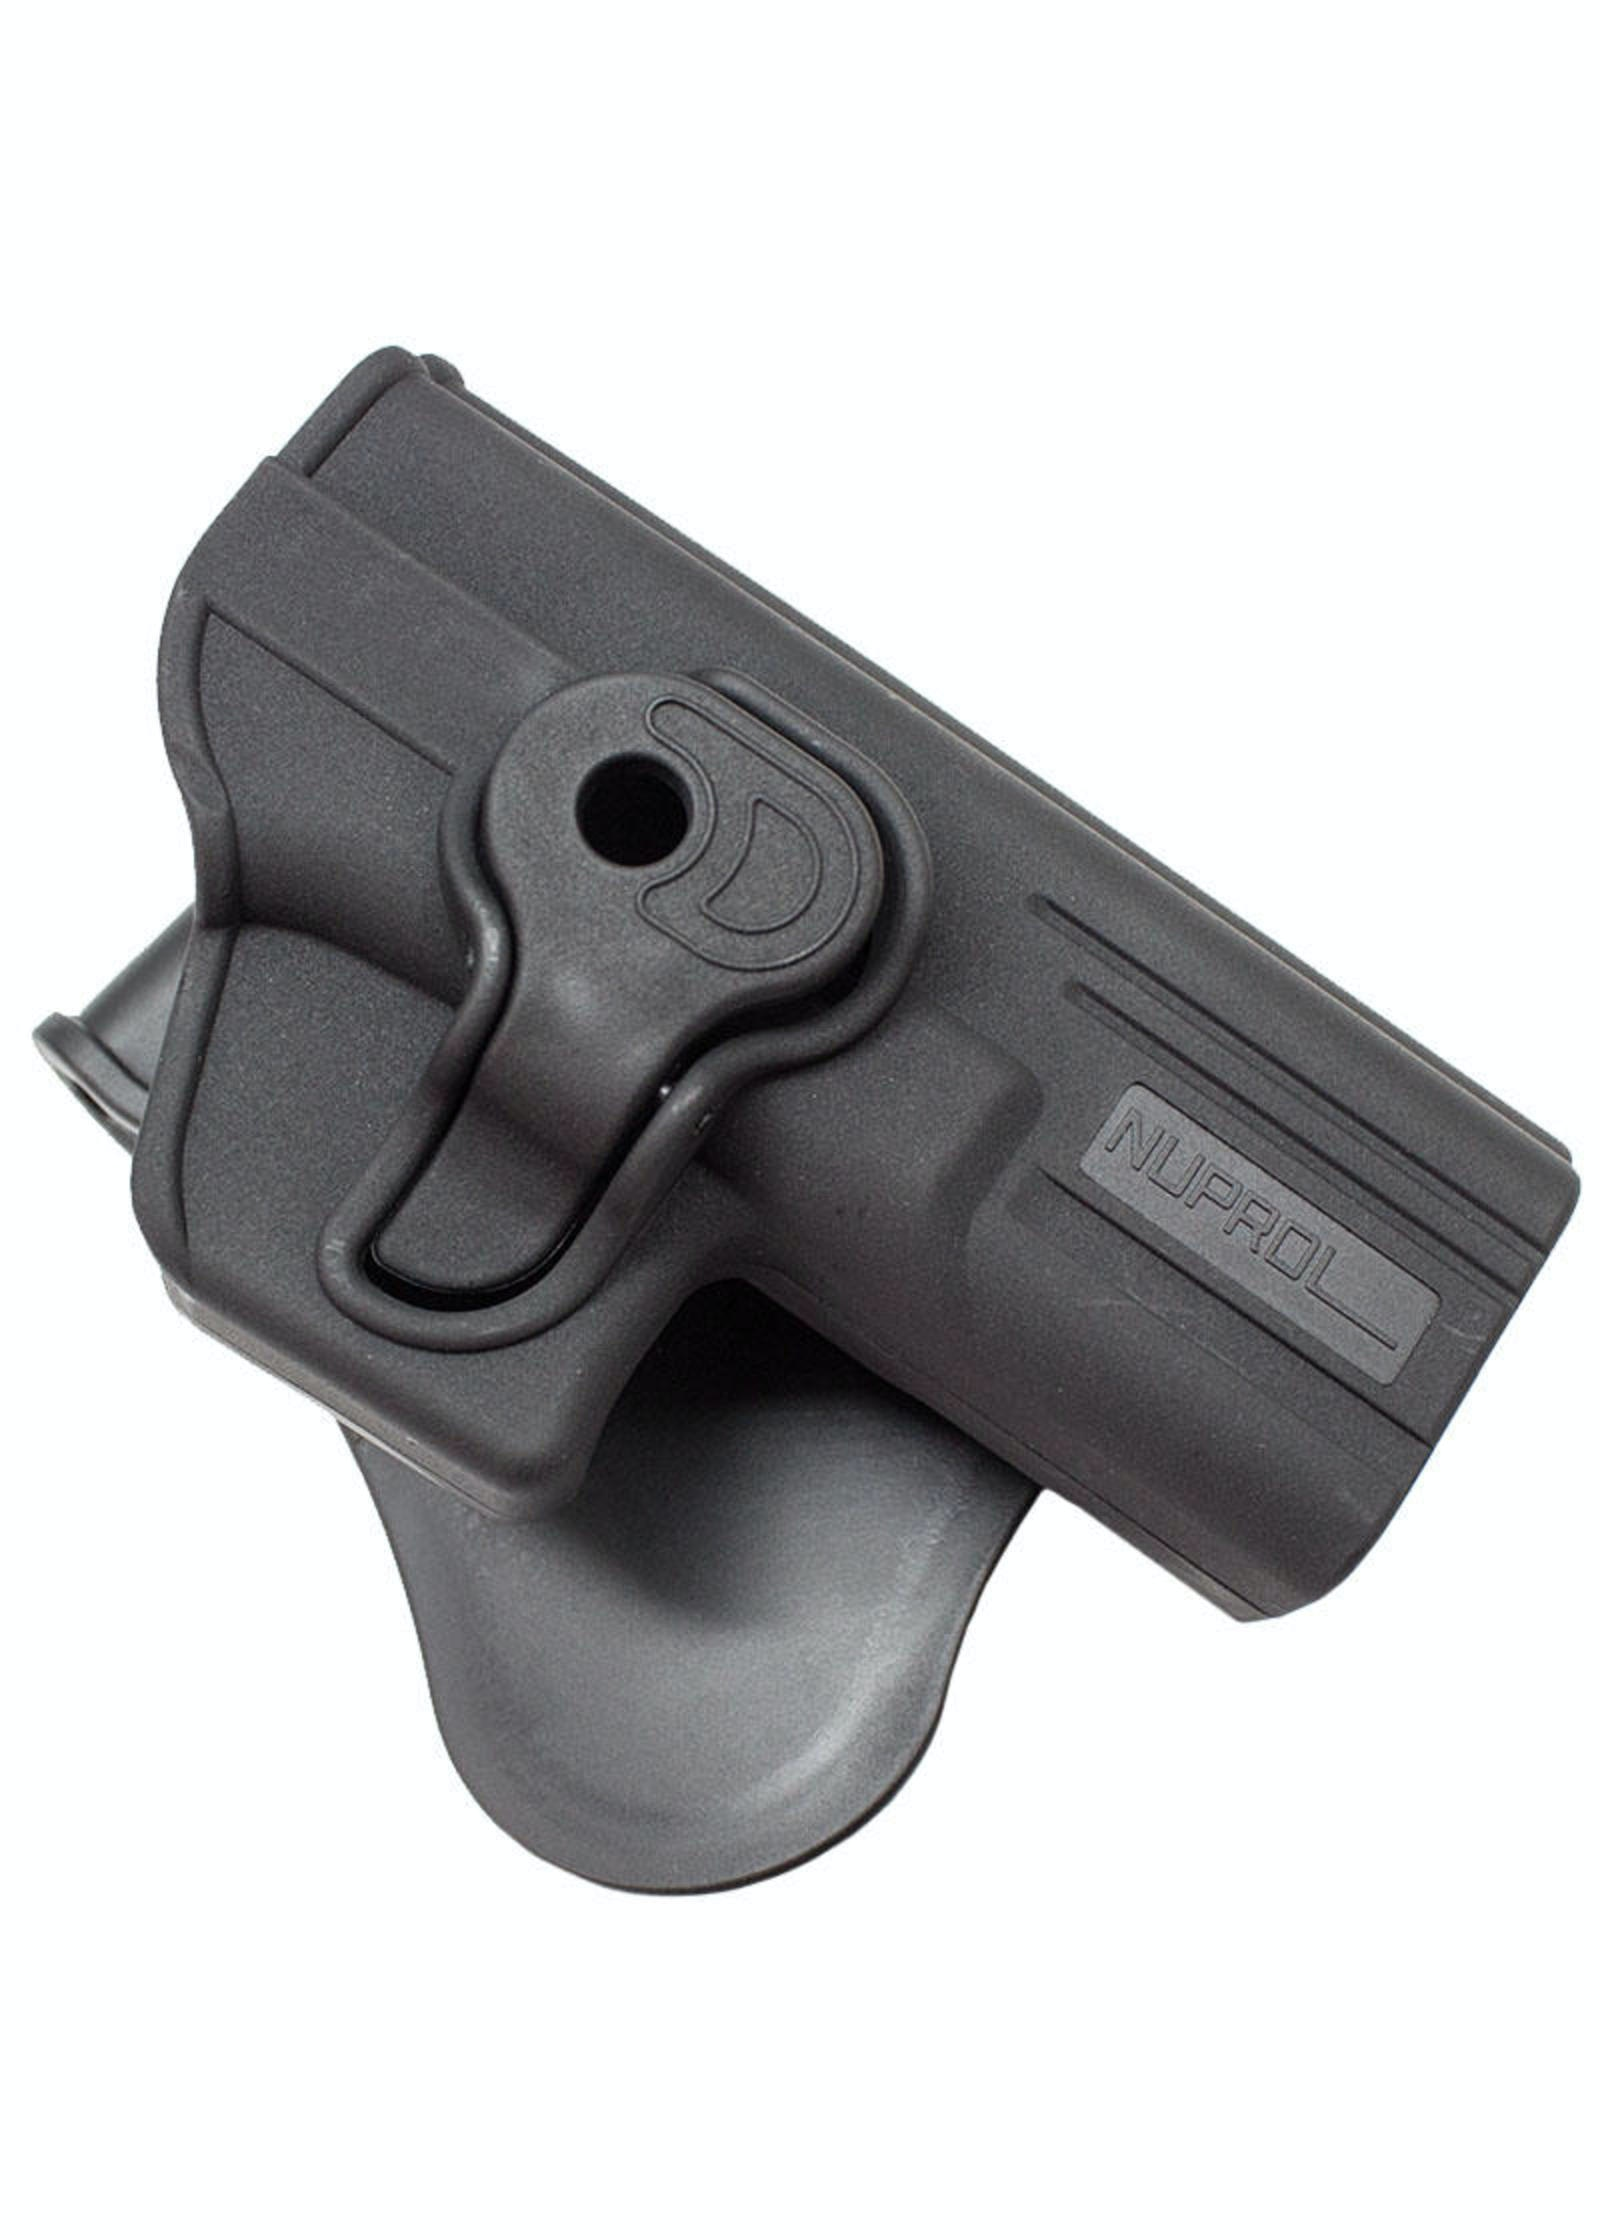 NUPROL EU G-Series Pistol Retention Paddle Holster